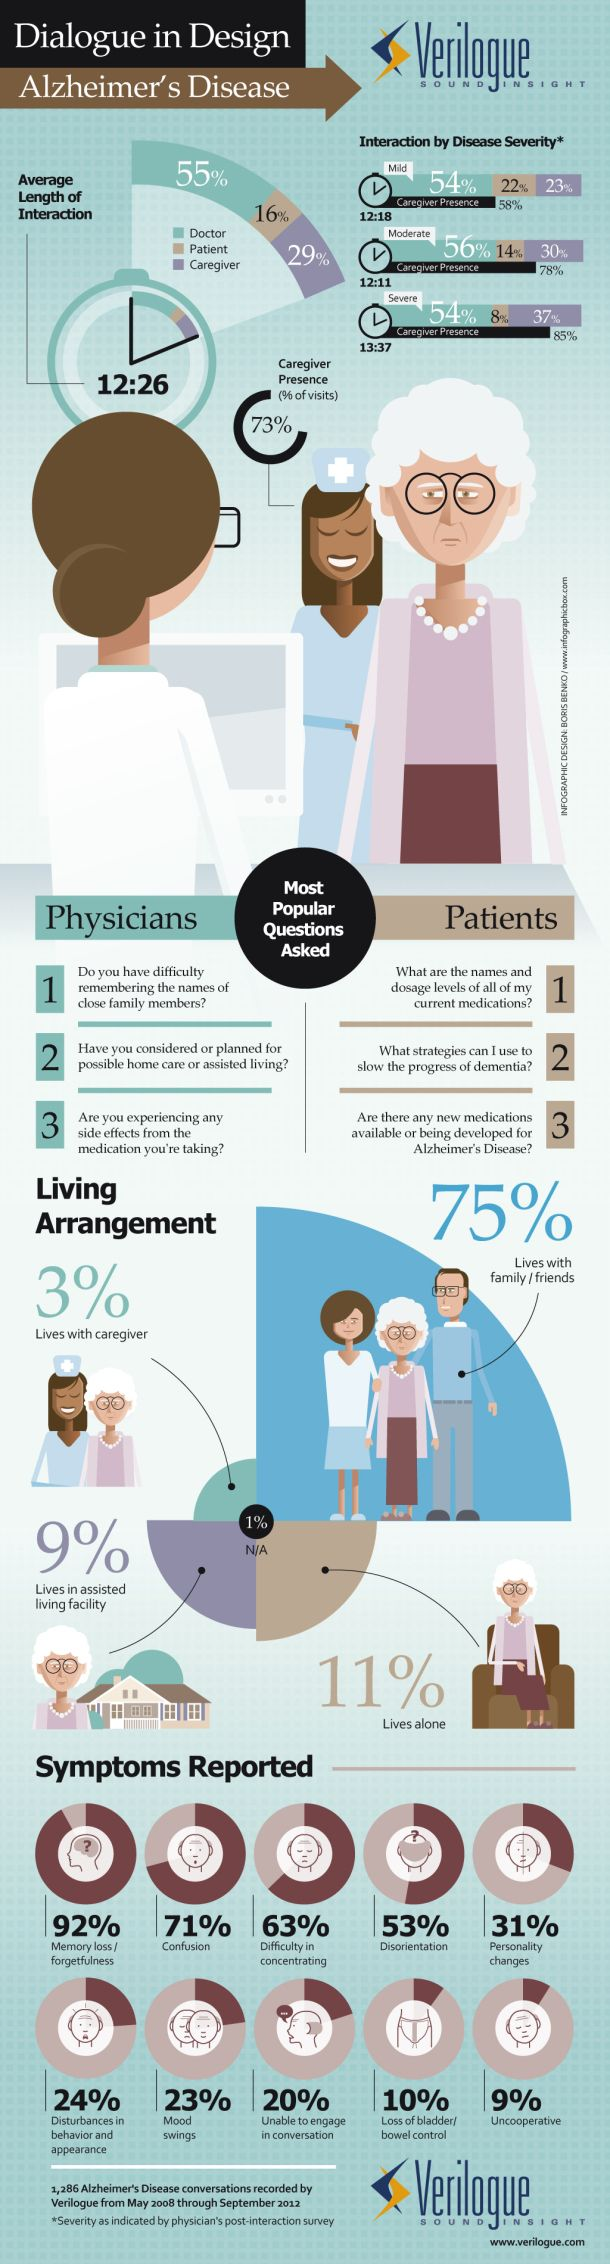 Dialogue in Design: Alzheimer's Disease [INFOGRAPHIC]